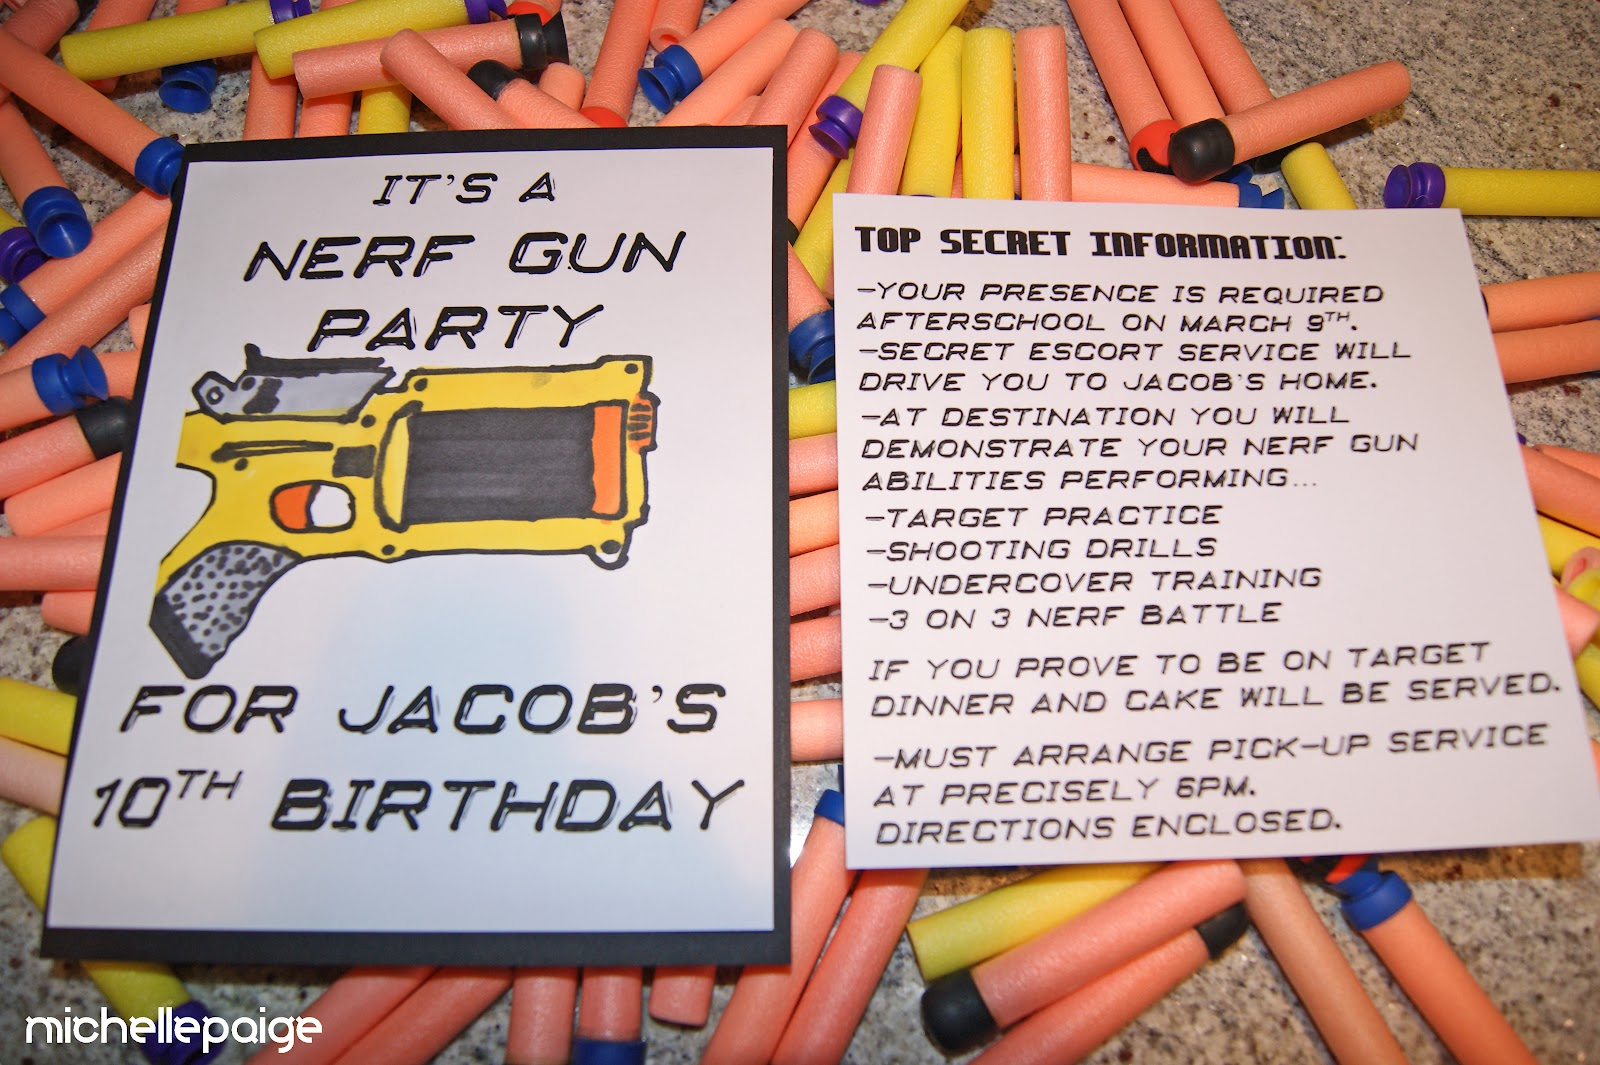 Michelle Paige Blogs Nerf Gun Party 3x3 Super Set Circuit Workout Working It Out Pinterest Was Drawn By My Son